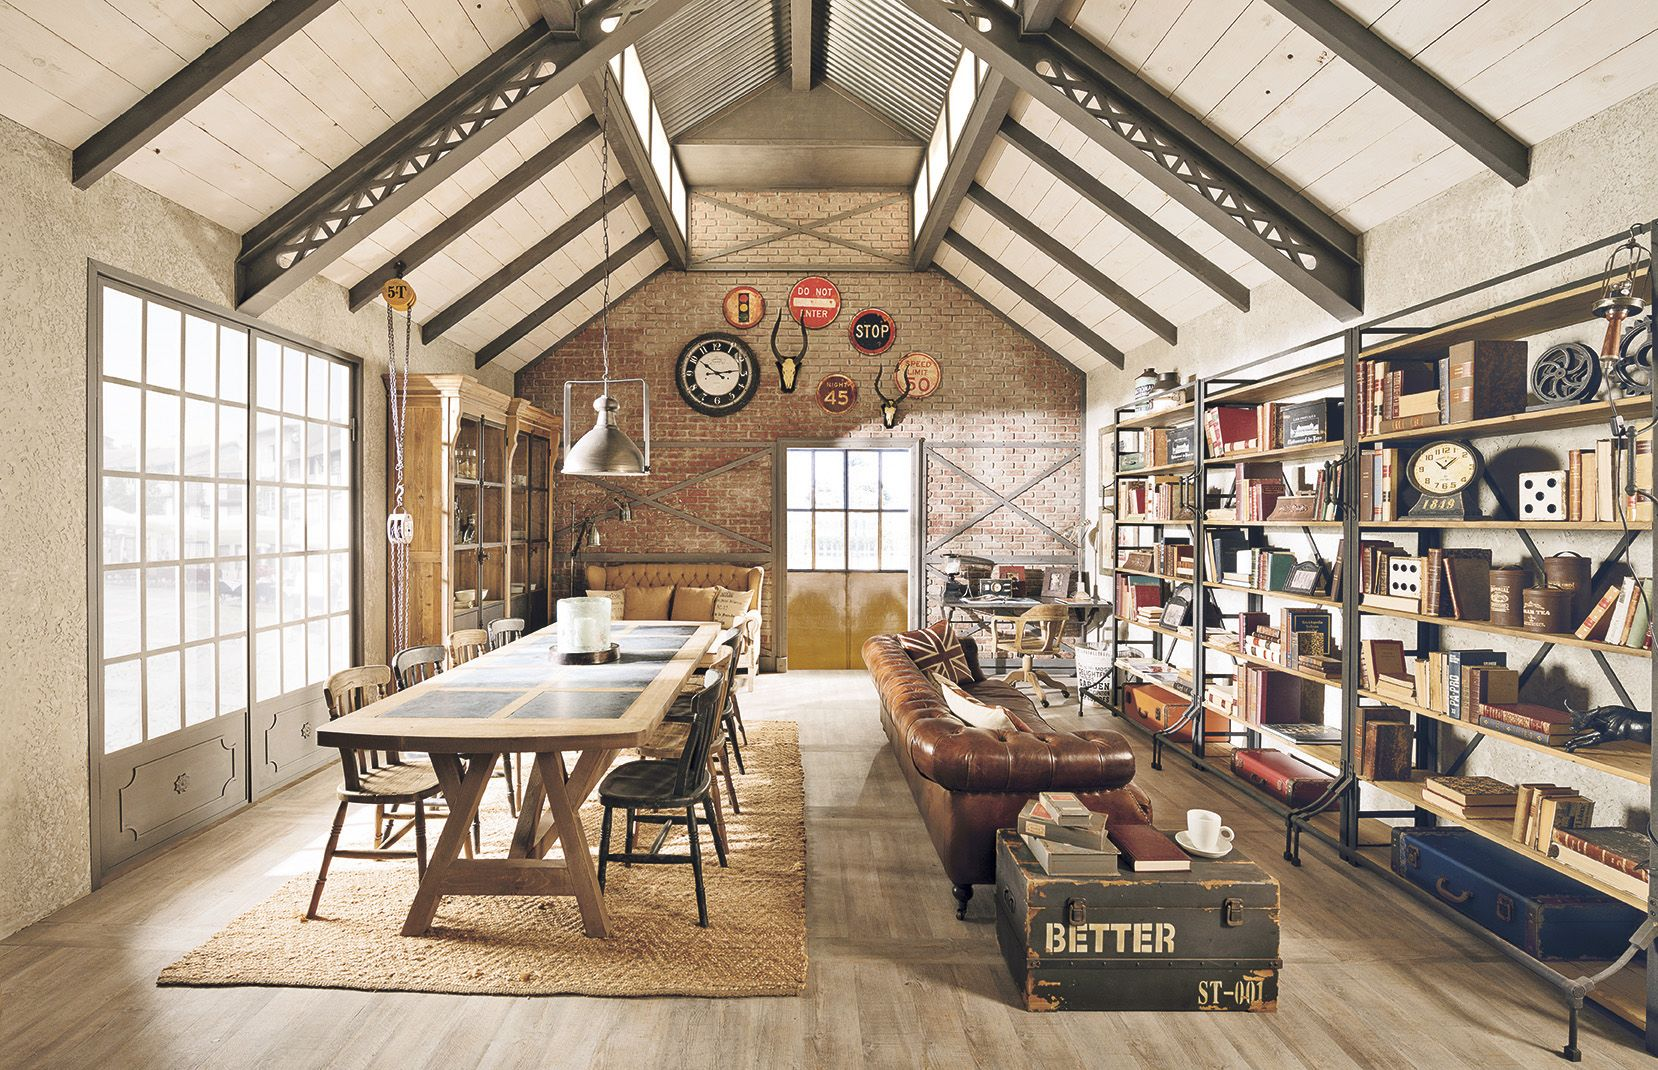 Arredamento country vintage industrial loft urban for Country house arredamento